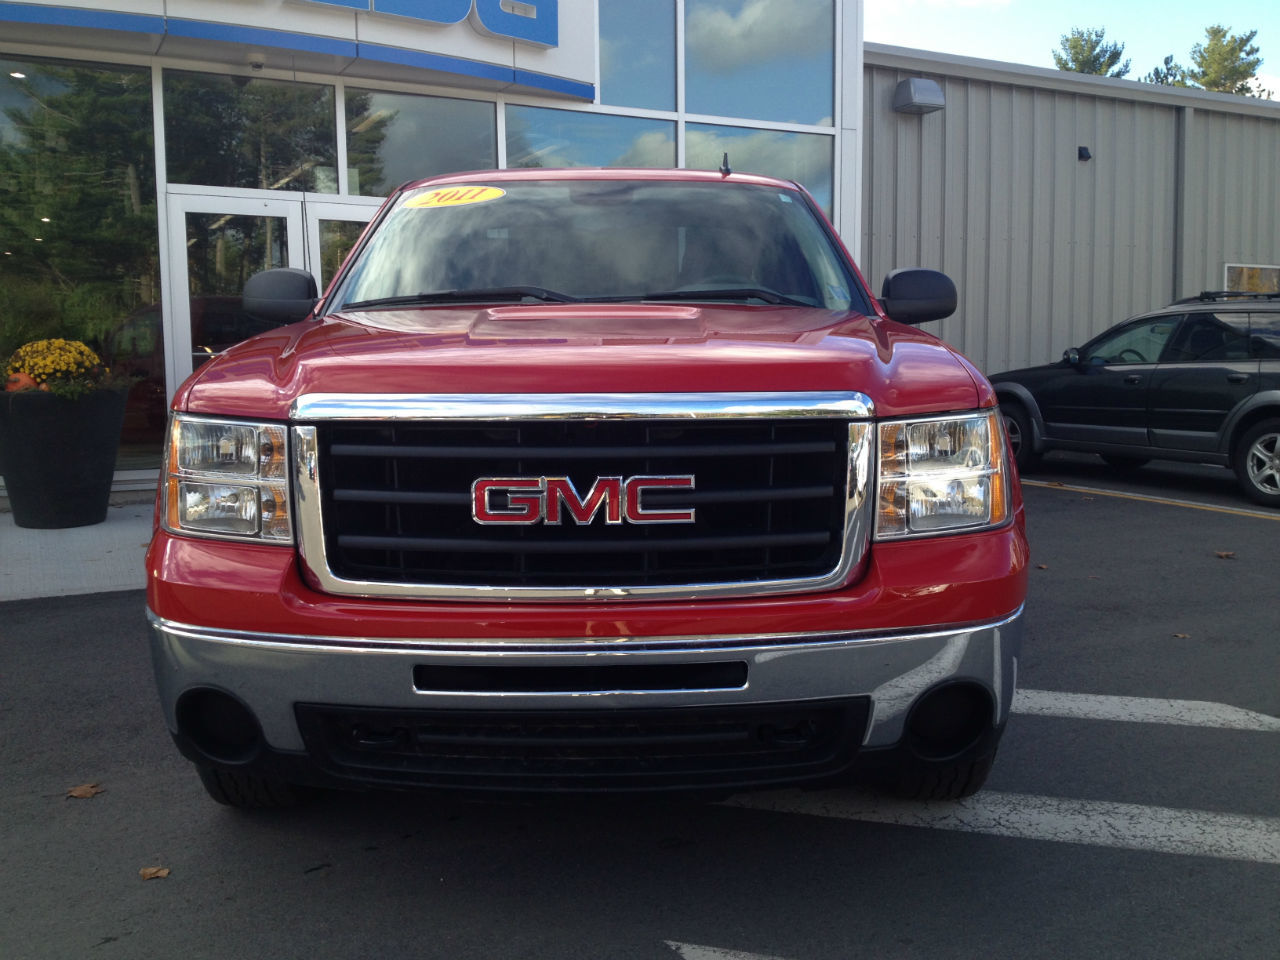 used 2011 gmc sierra 1500 sl nevada edition in new germany used inventory lake view auto in. Black Bedroom Furniture Sets. Home Design Ideas